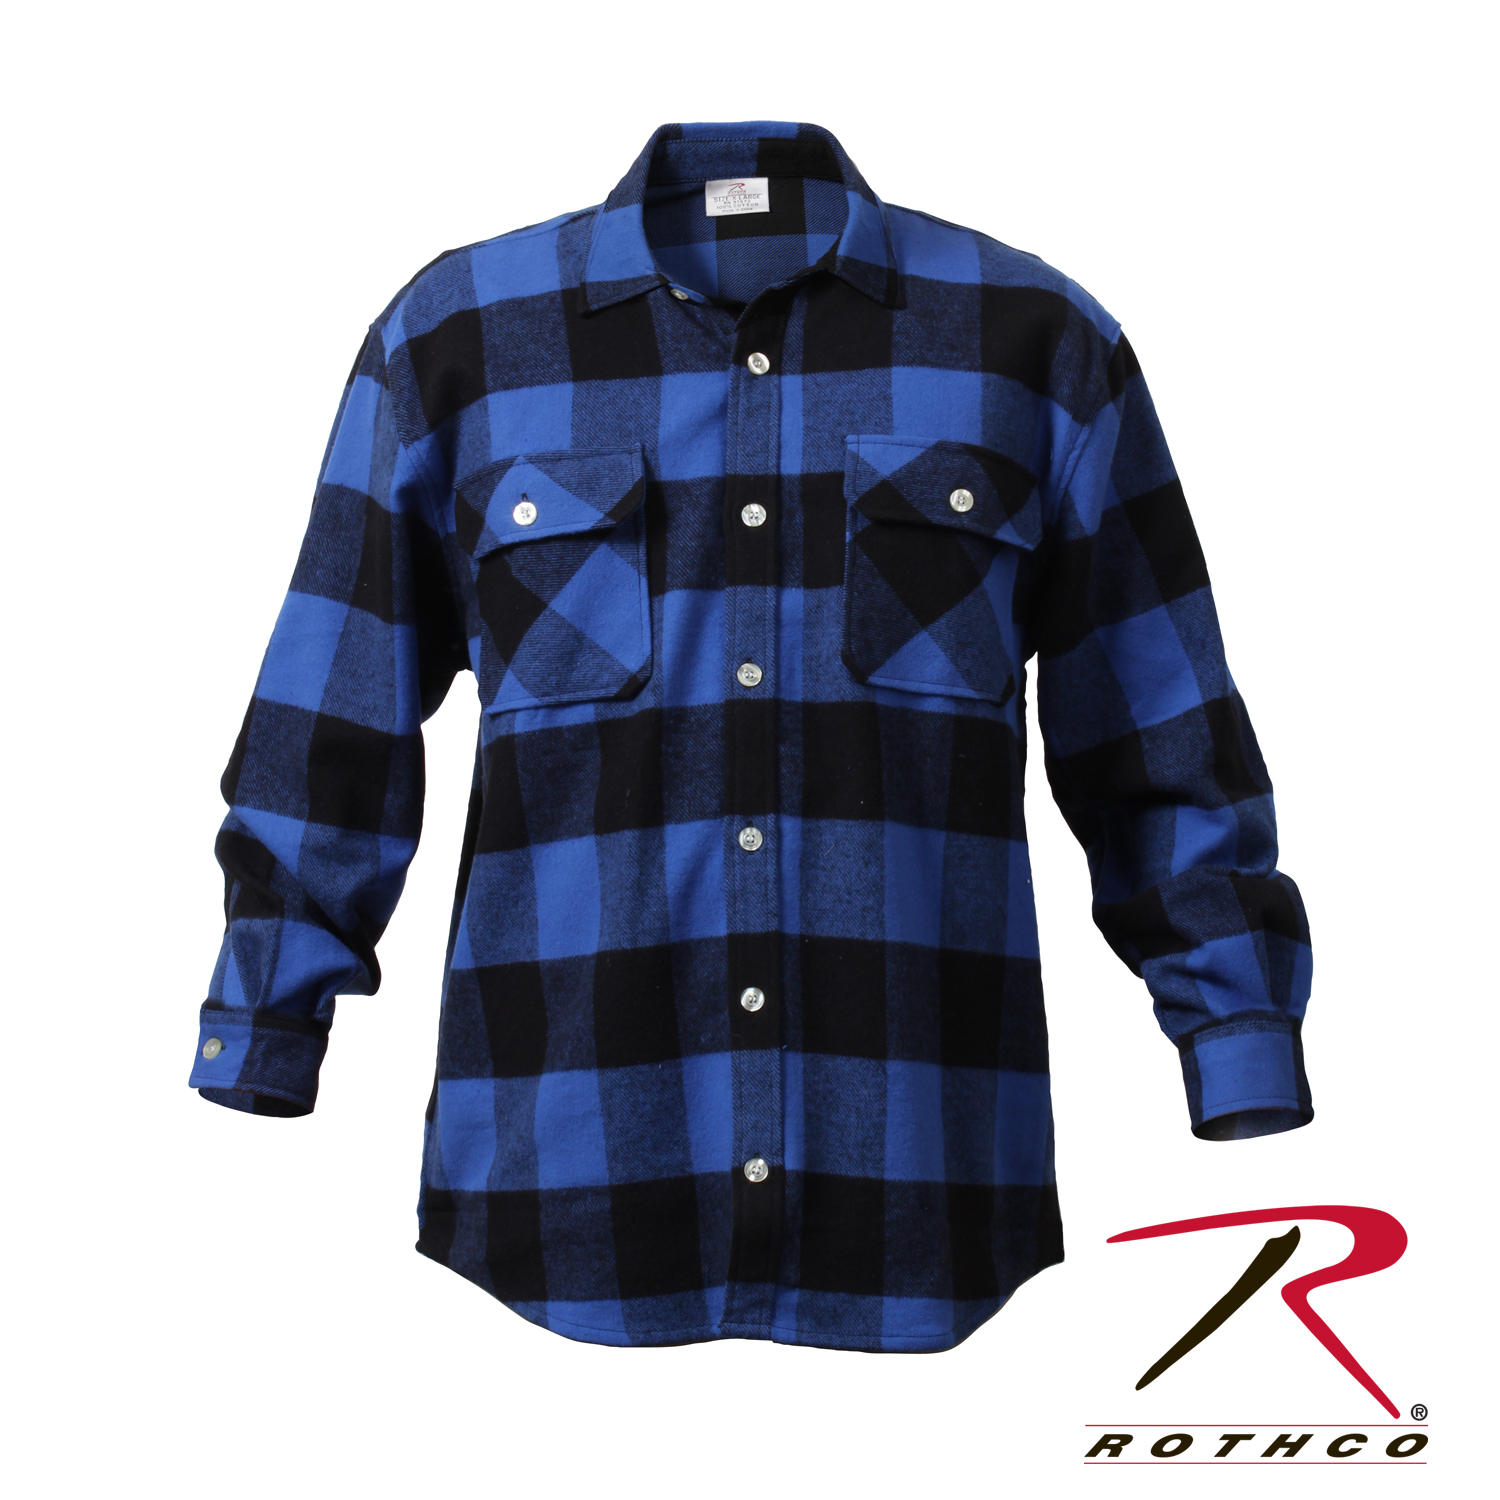 Rothco 4739 Extra Heavyweight Buffalo Plaid Flannel Shirts  cfc5f7dbb04